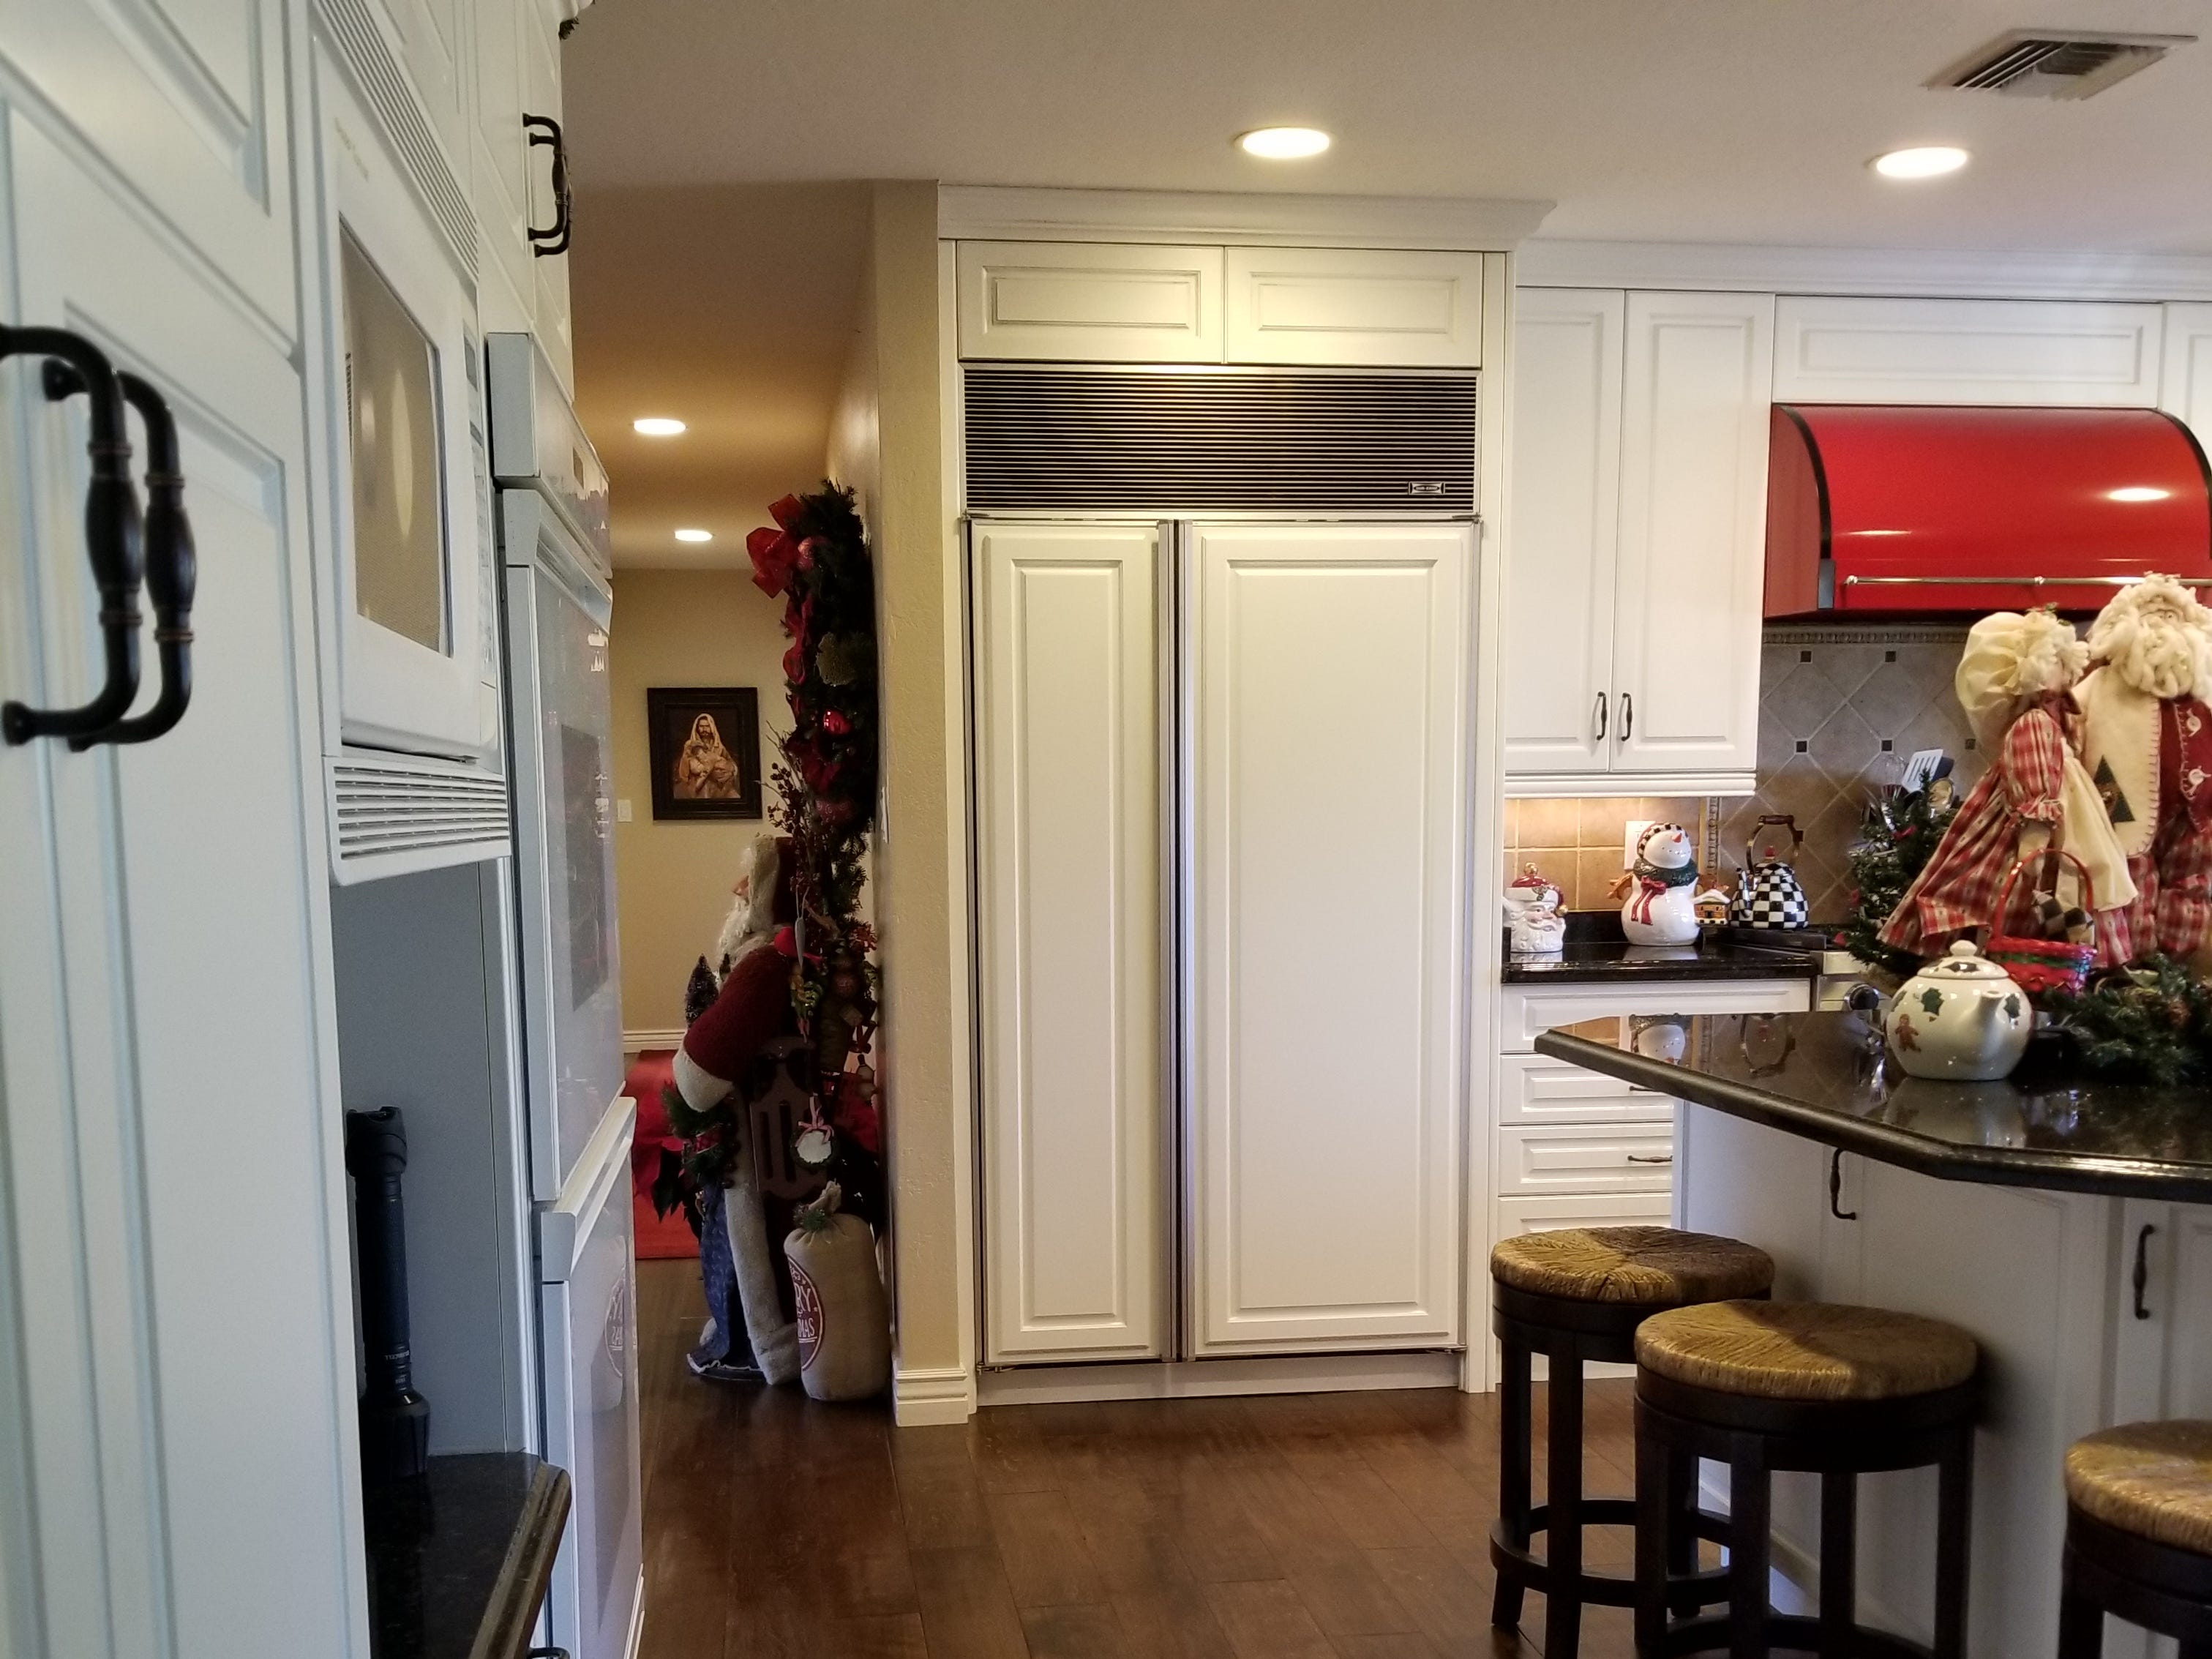 The kitchen underwent an extensive remodel in 2009. Dark wood cabinets were replaced with stunning white; a soffit of cabinets over a peninsula was removed, allowing for an open sight-line and access to the sunken family room. Ceilings were raised and abundant recessed lighting and new flooring added. Double ovens, a gas grill and Sub-Zero refrigerator with matching panels and fire-red stove vent are Bob's favored kitchen features. A later revision enlarged the island, providing additional seating for five, and engineered floors in dark woods match the newly upgraded hallway to the foyer and bedroom suite to achieve consistency throughout. Double French doors provide access to an oversize patio, lush backyard and pool area. It is stunning in every detail, and is reflective of Linda's farm-influenced childhood in Duncan and Laveen.